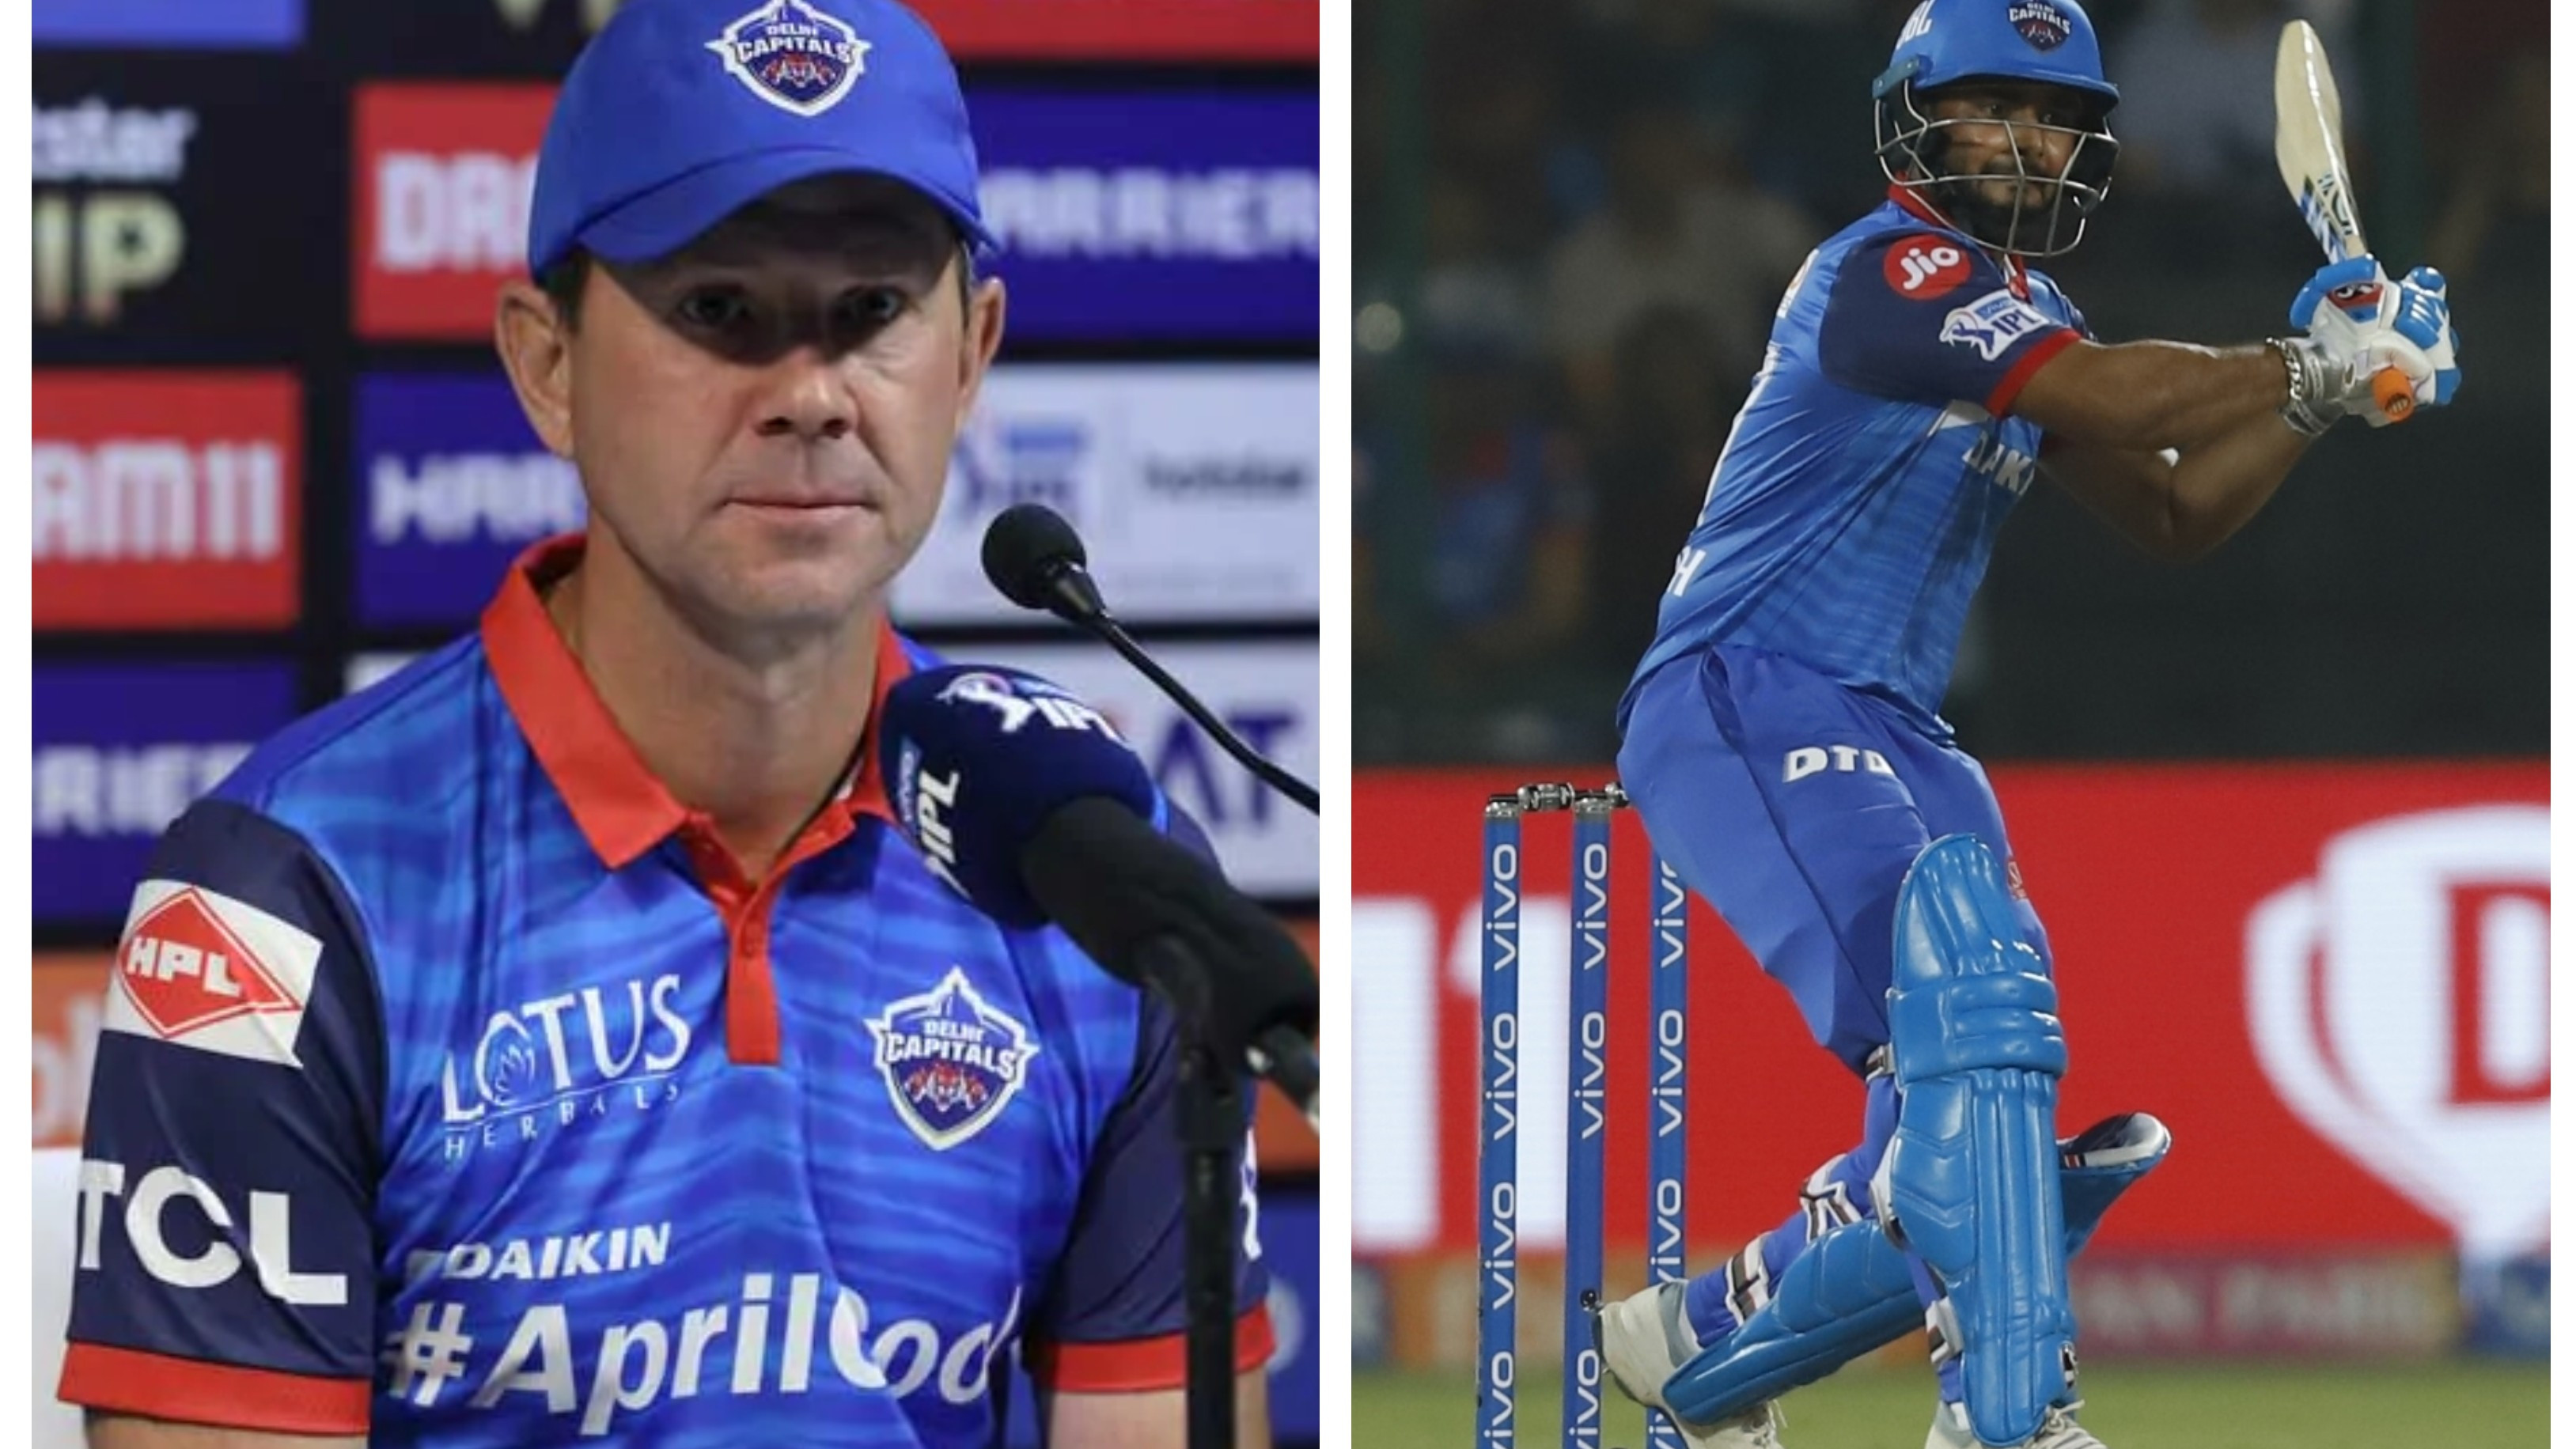 IPL 2021: 'Captaincy will make Rishabh Pant an even better player', says DC head coach Ricky Ponting